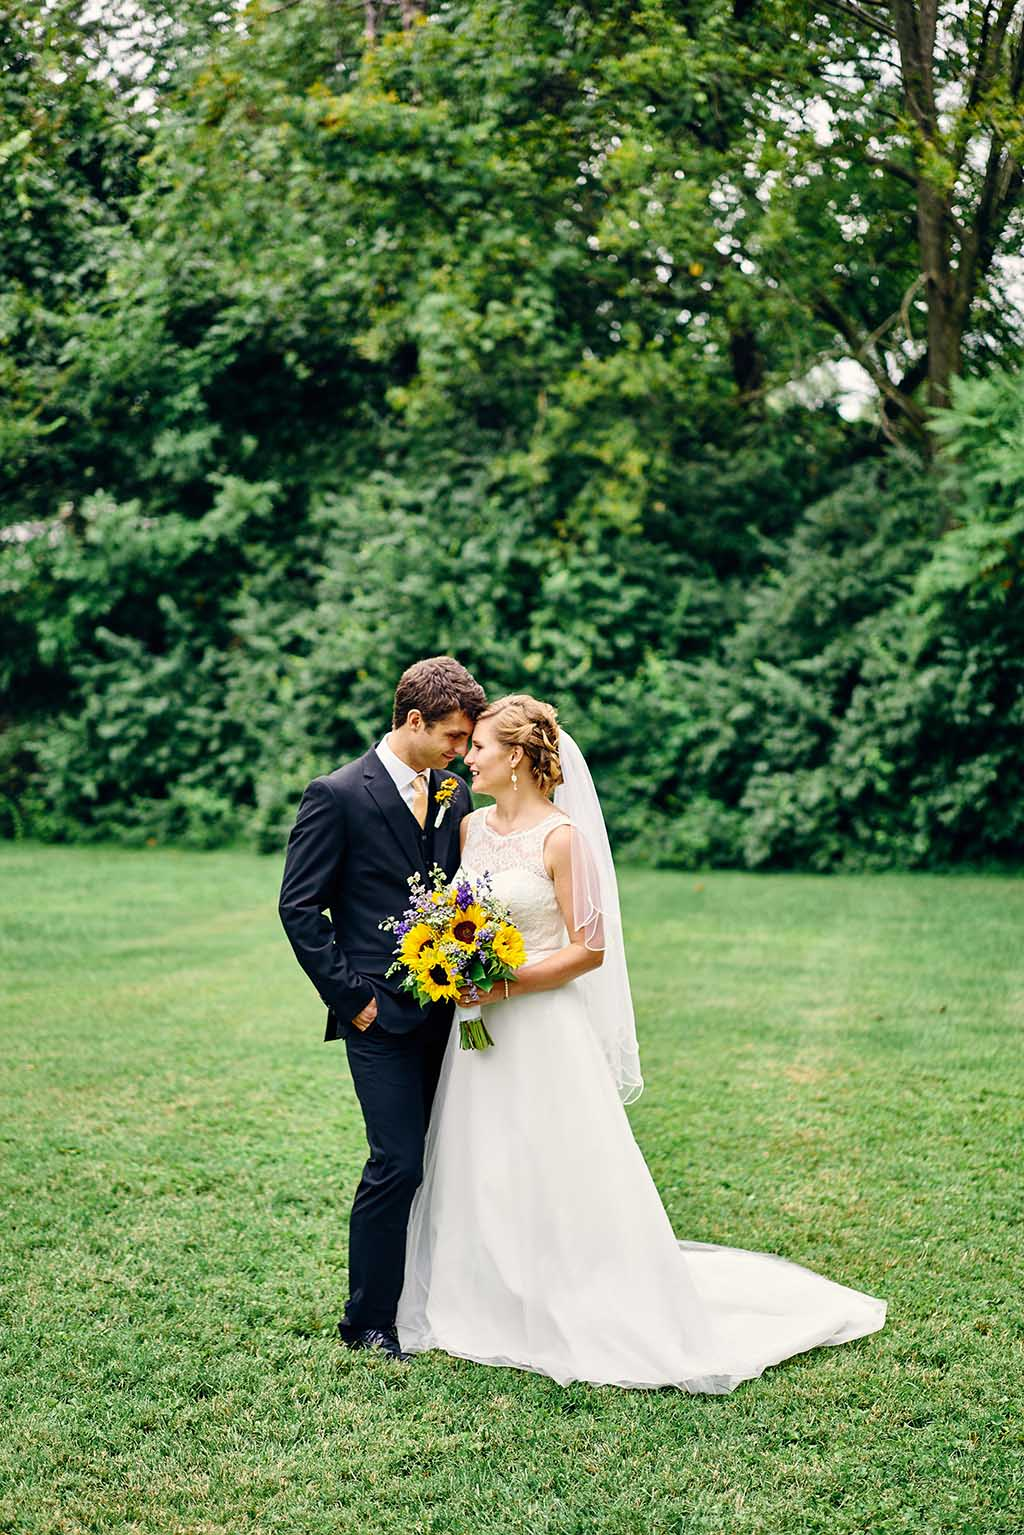 Old Cathedral Basilica / Oak Knoll Park / Royale Orleans Wedding Photos by St. Louis Wedding Photographers Oldani Photography